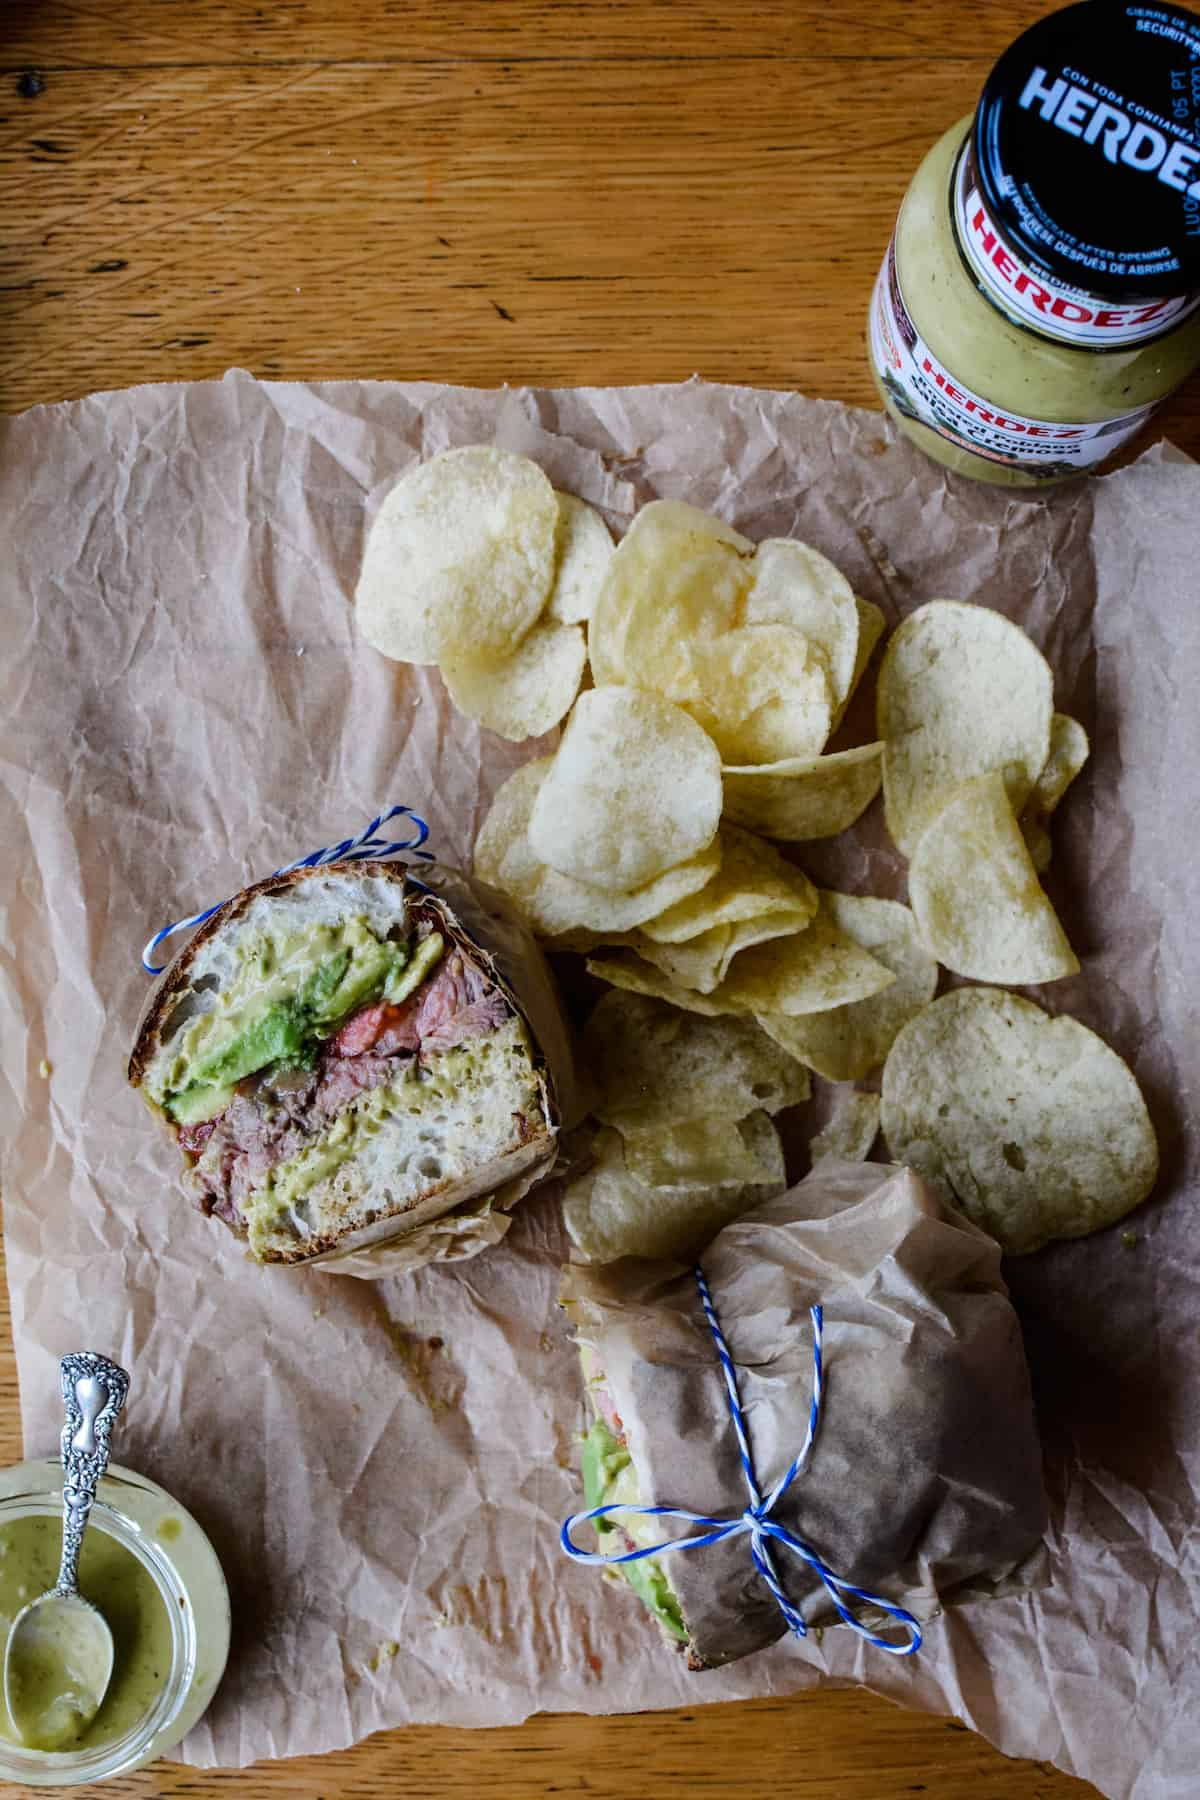 A sandwich sitting on a piece of brown parchment paper surrounded by chips.